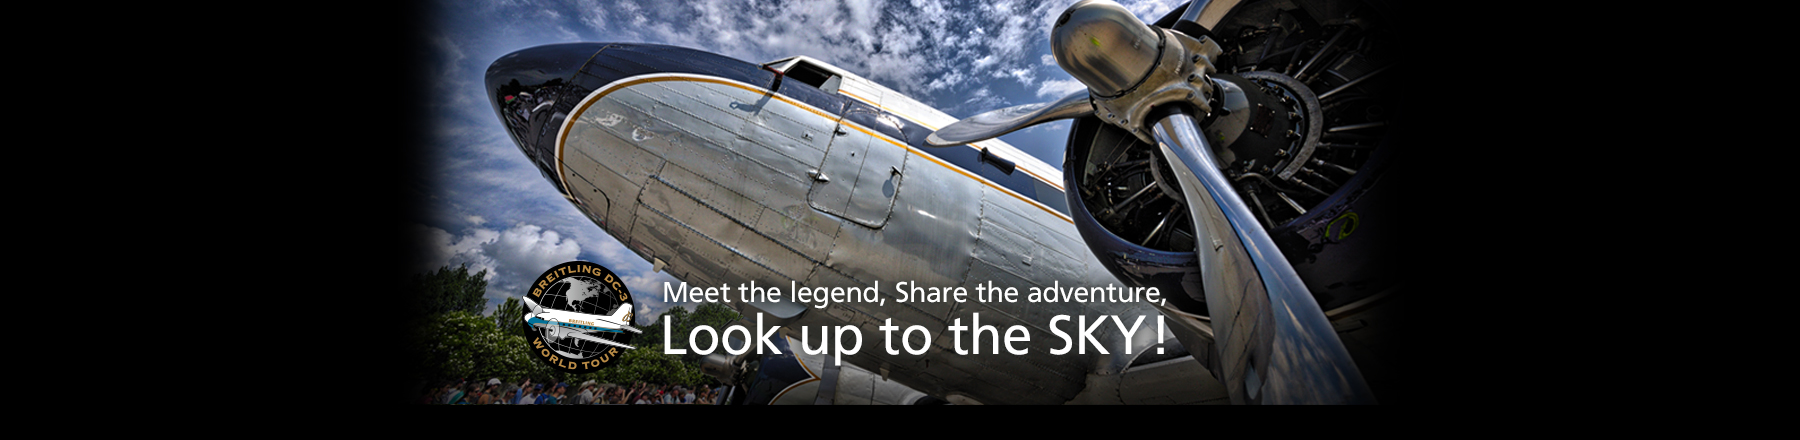 Meet the legend, Share the adventure, Look up to the SKY !